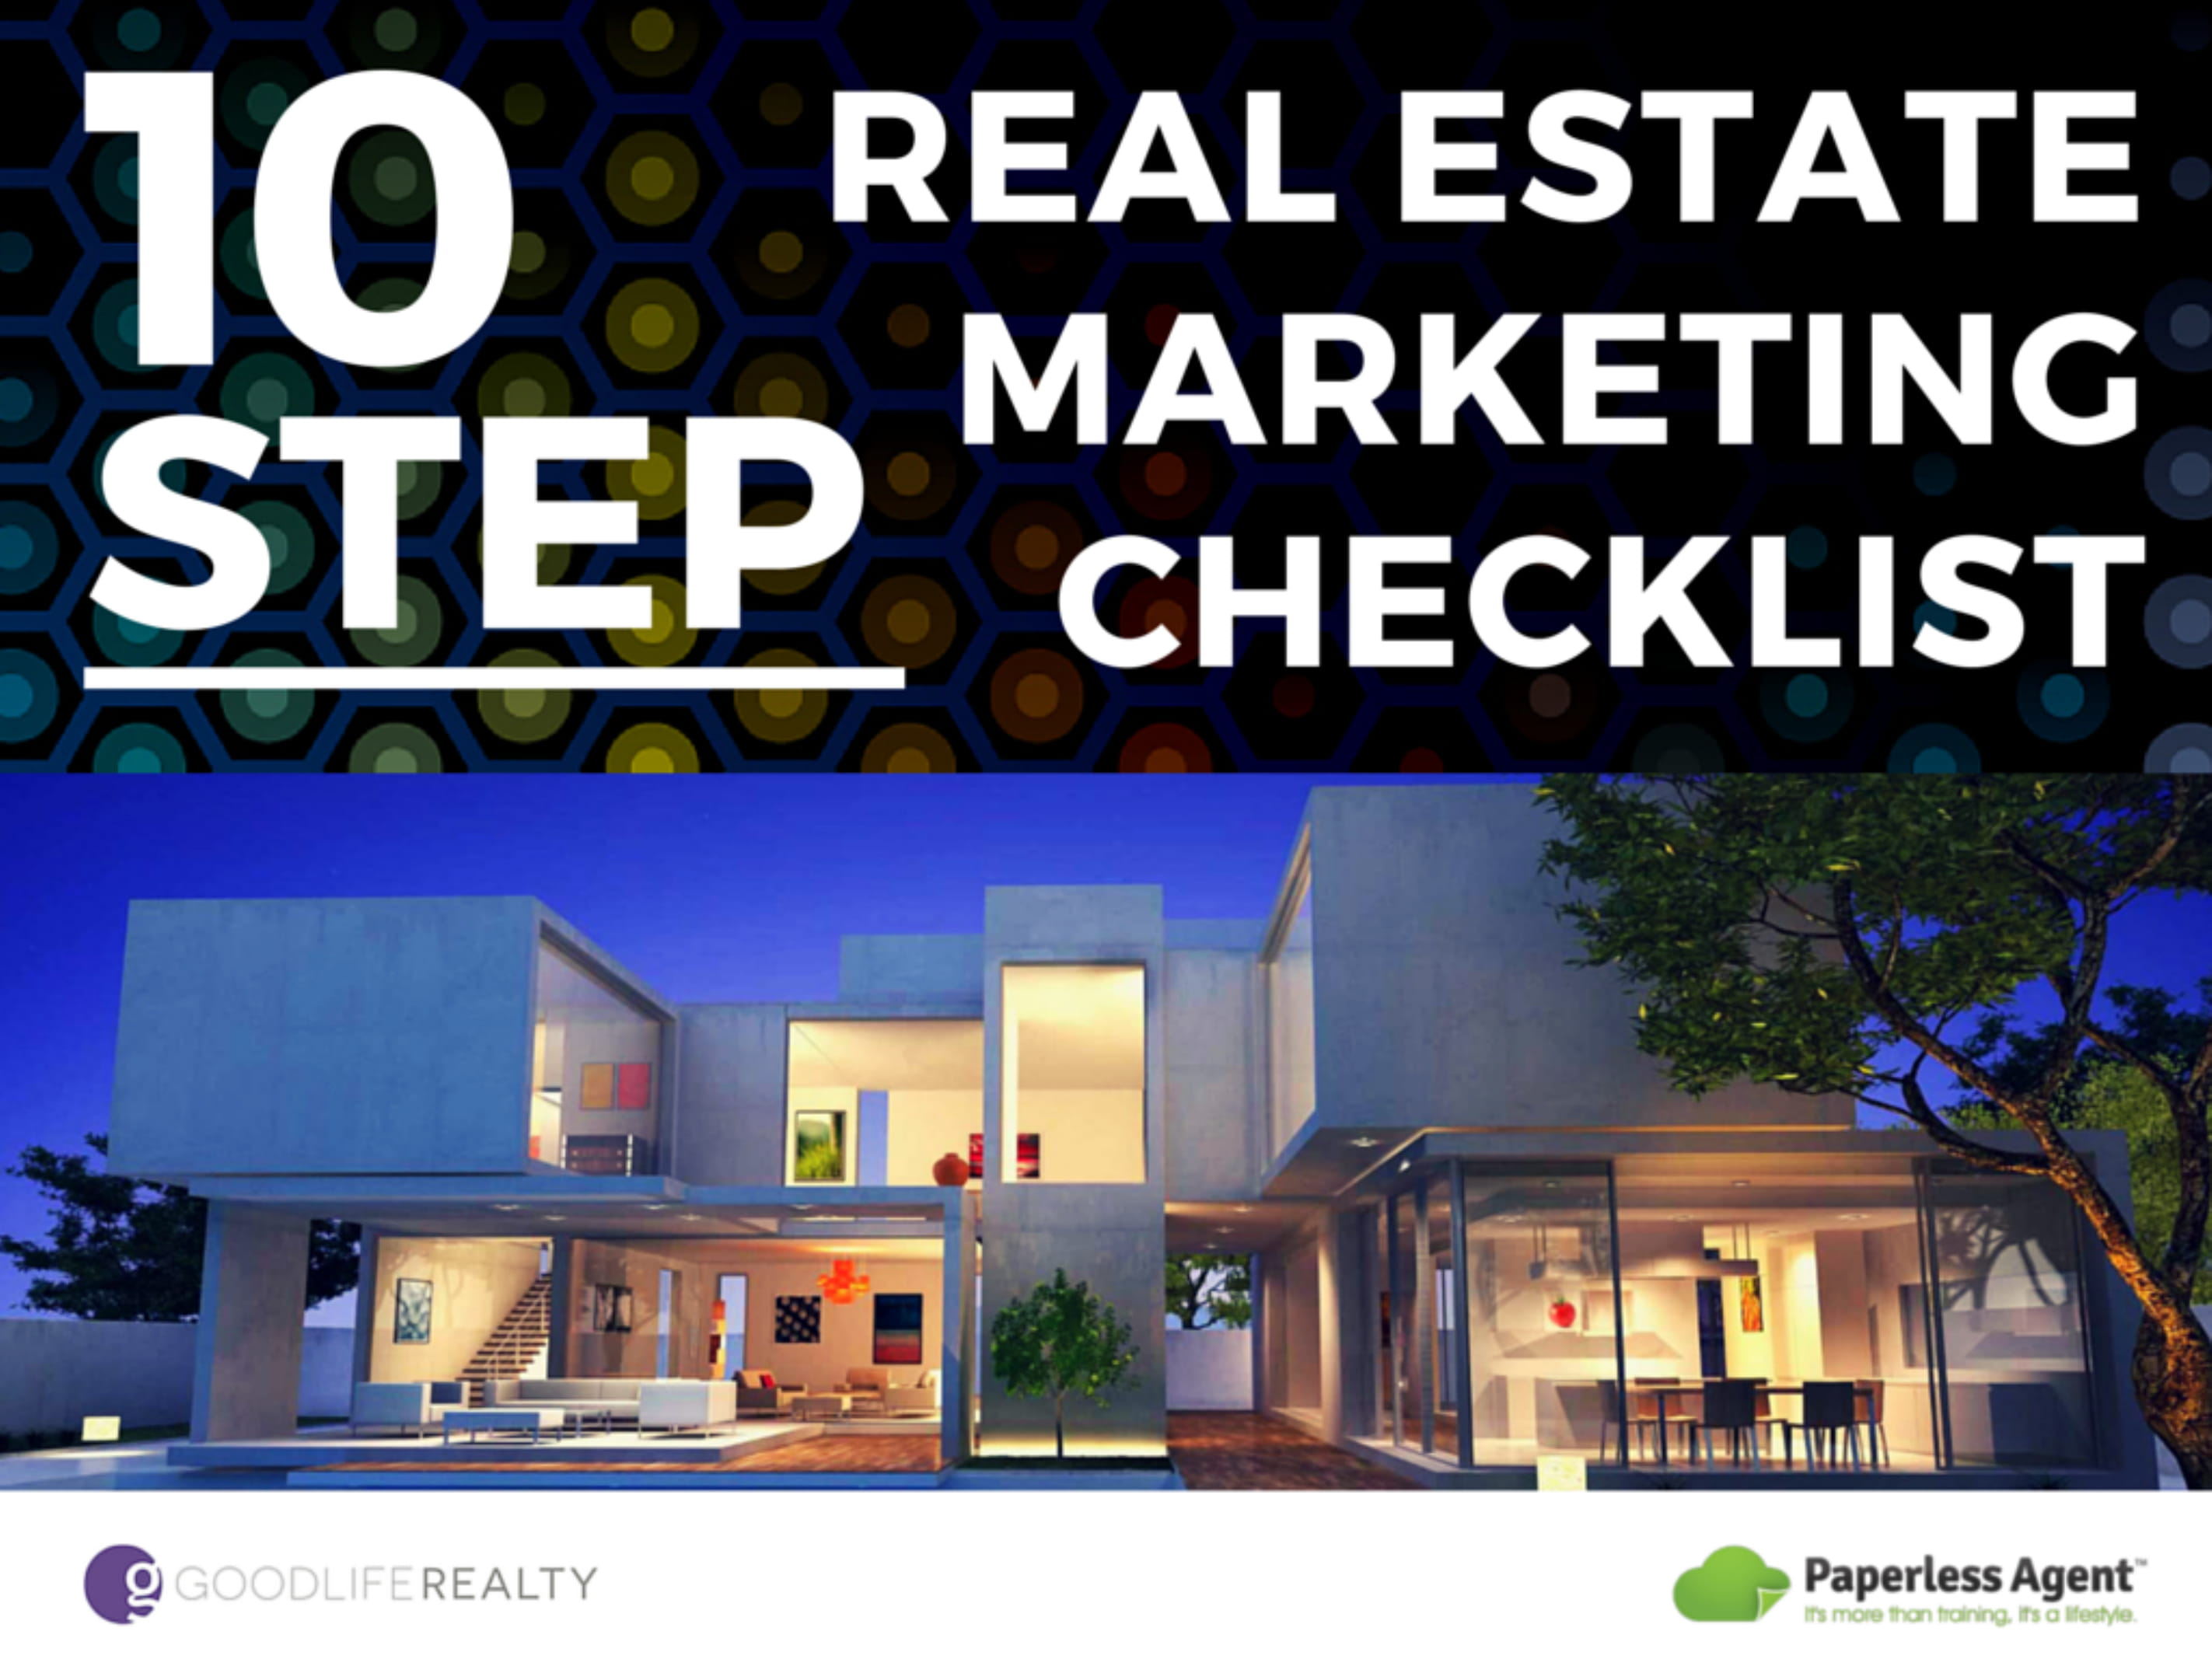 real estate marketing checklists and steps for an annual plan example 01